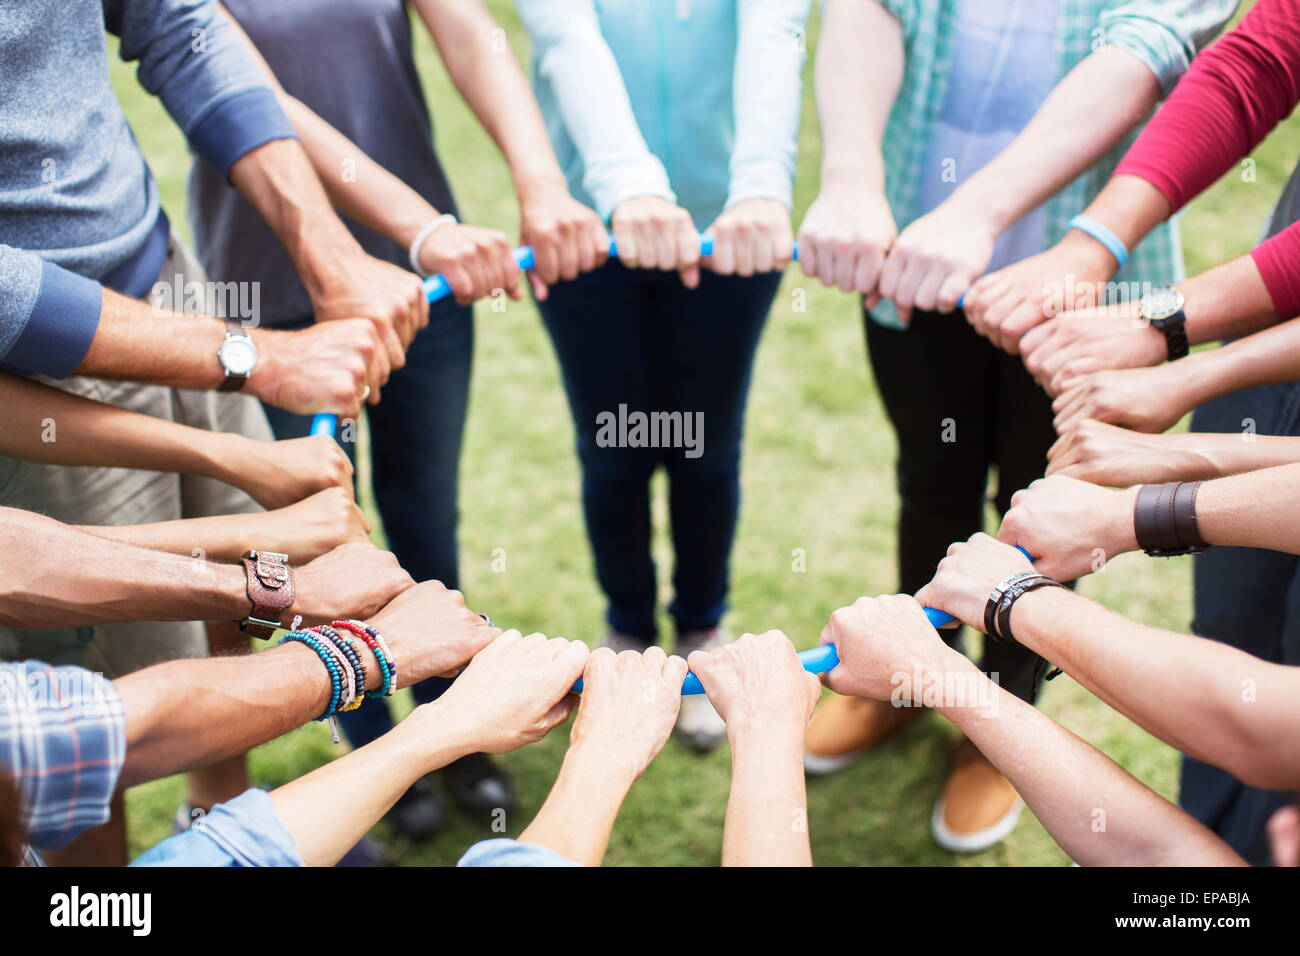 team connected circle plastic hoop - Stock Image